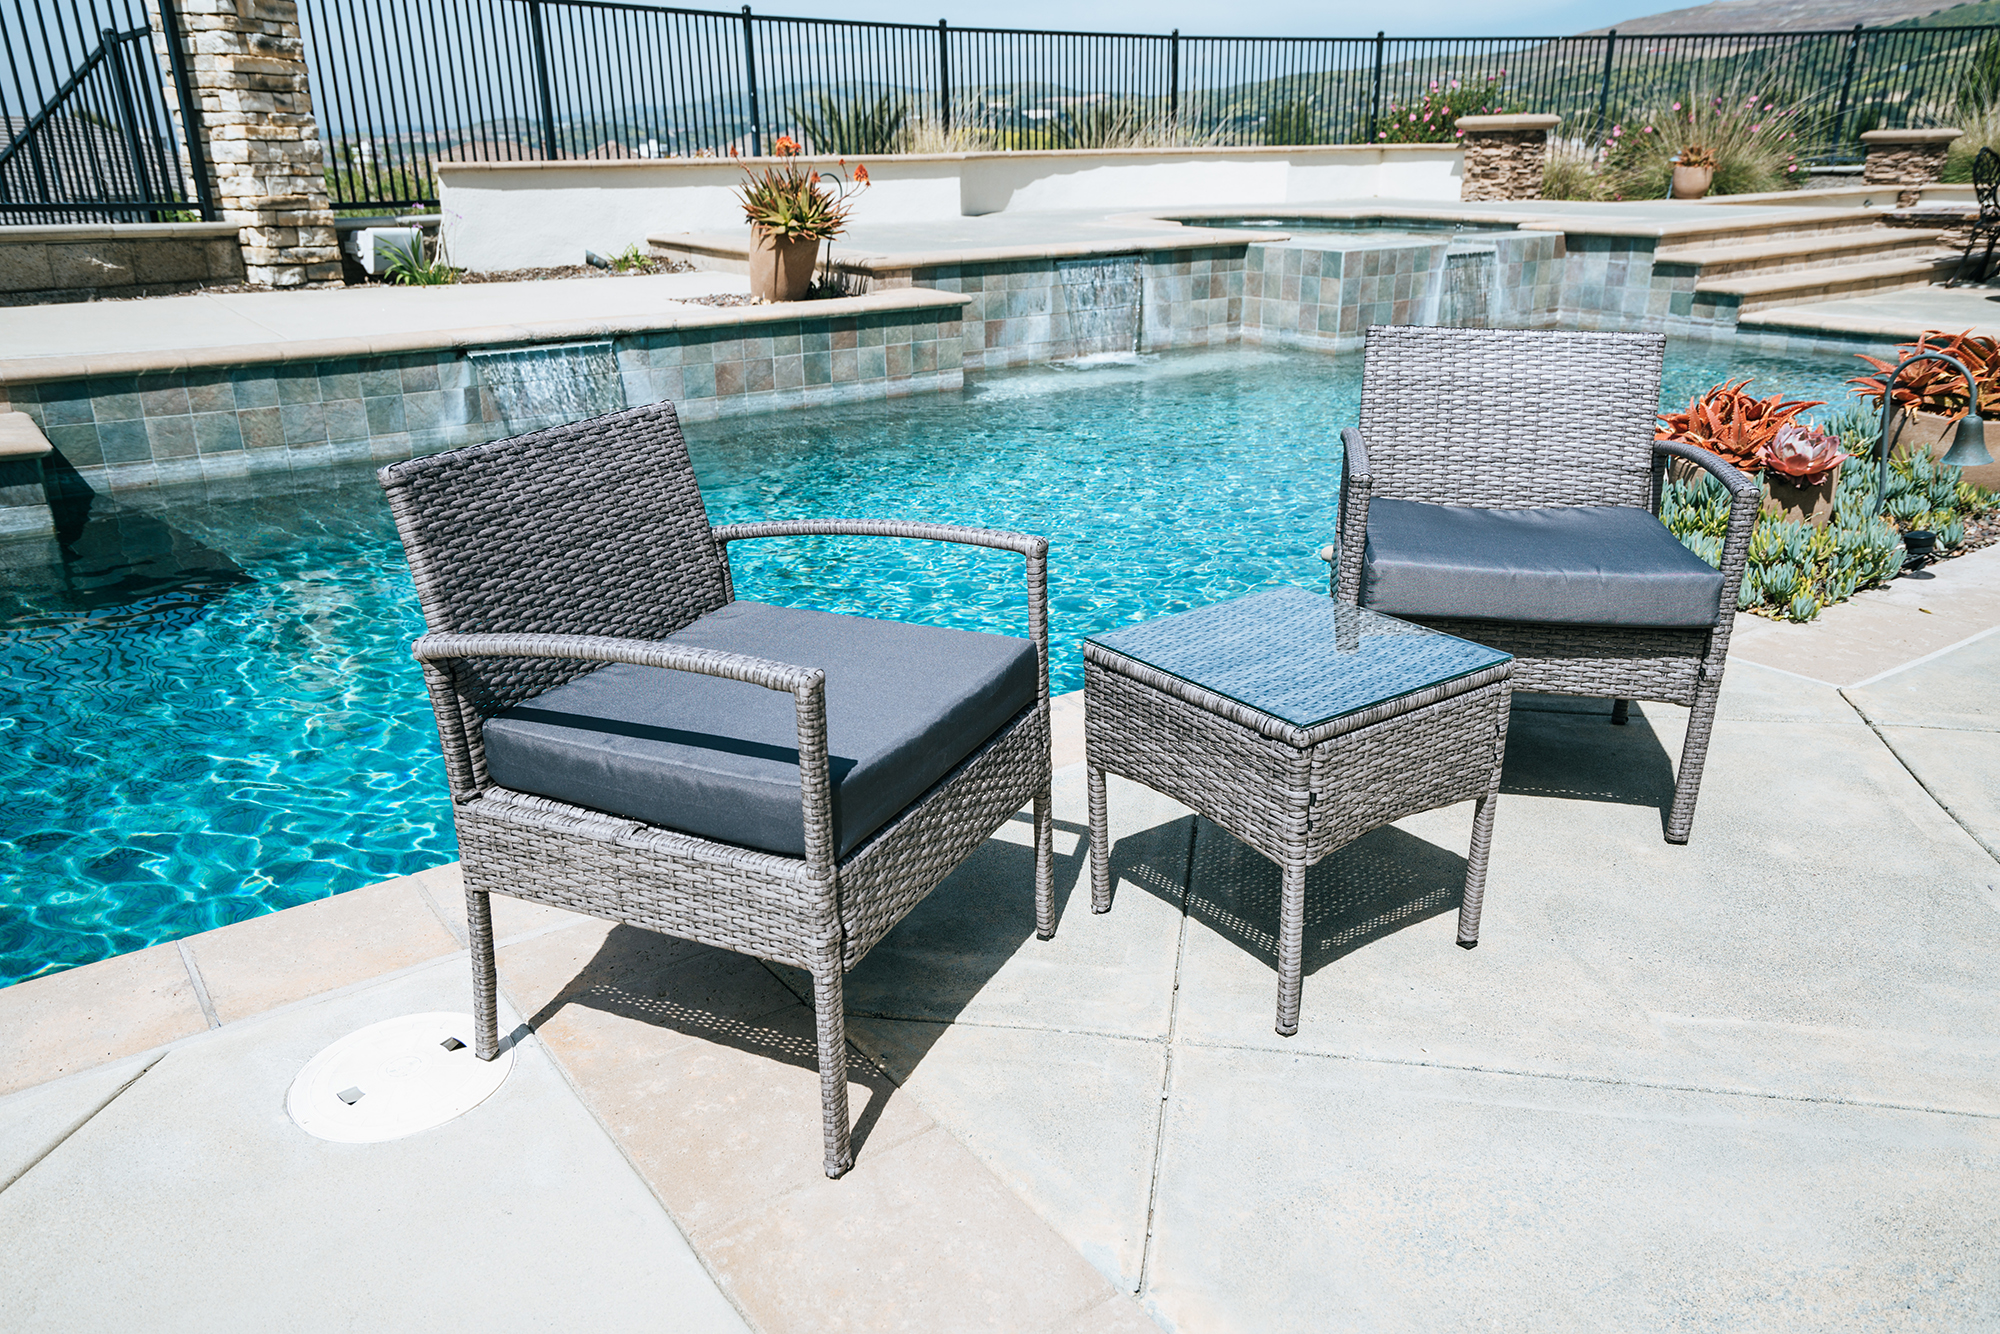 3pc Outdoor Rattan Wicker Furniture Table And Chair Patio Set, Gray